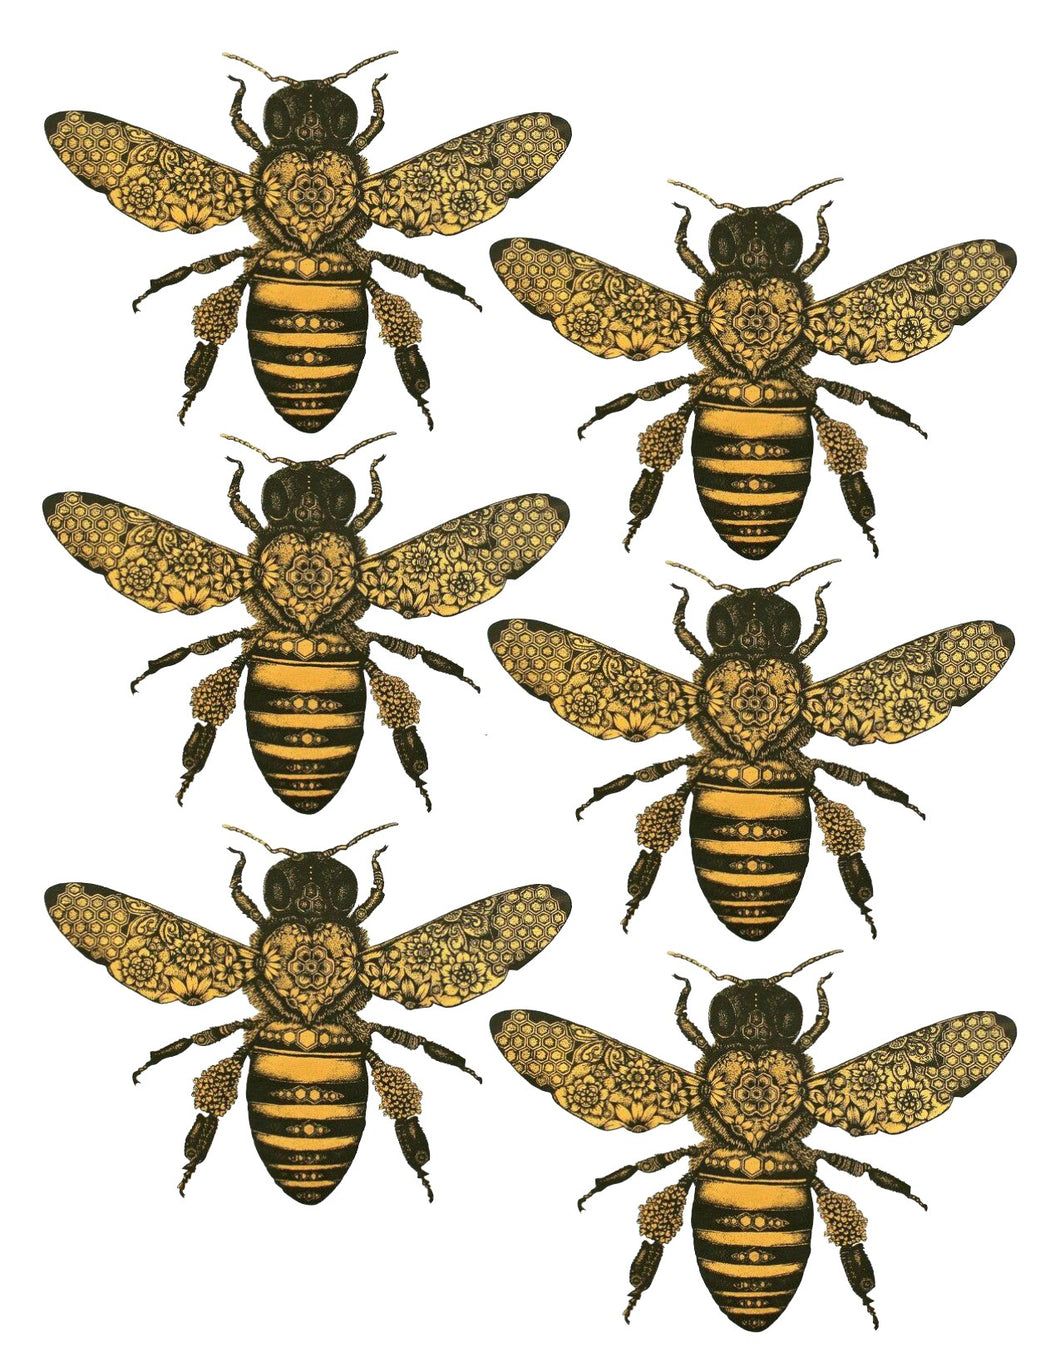 Black & Gold Honey Bees